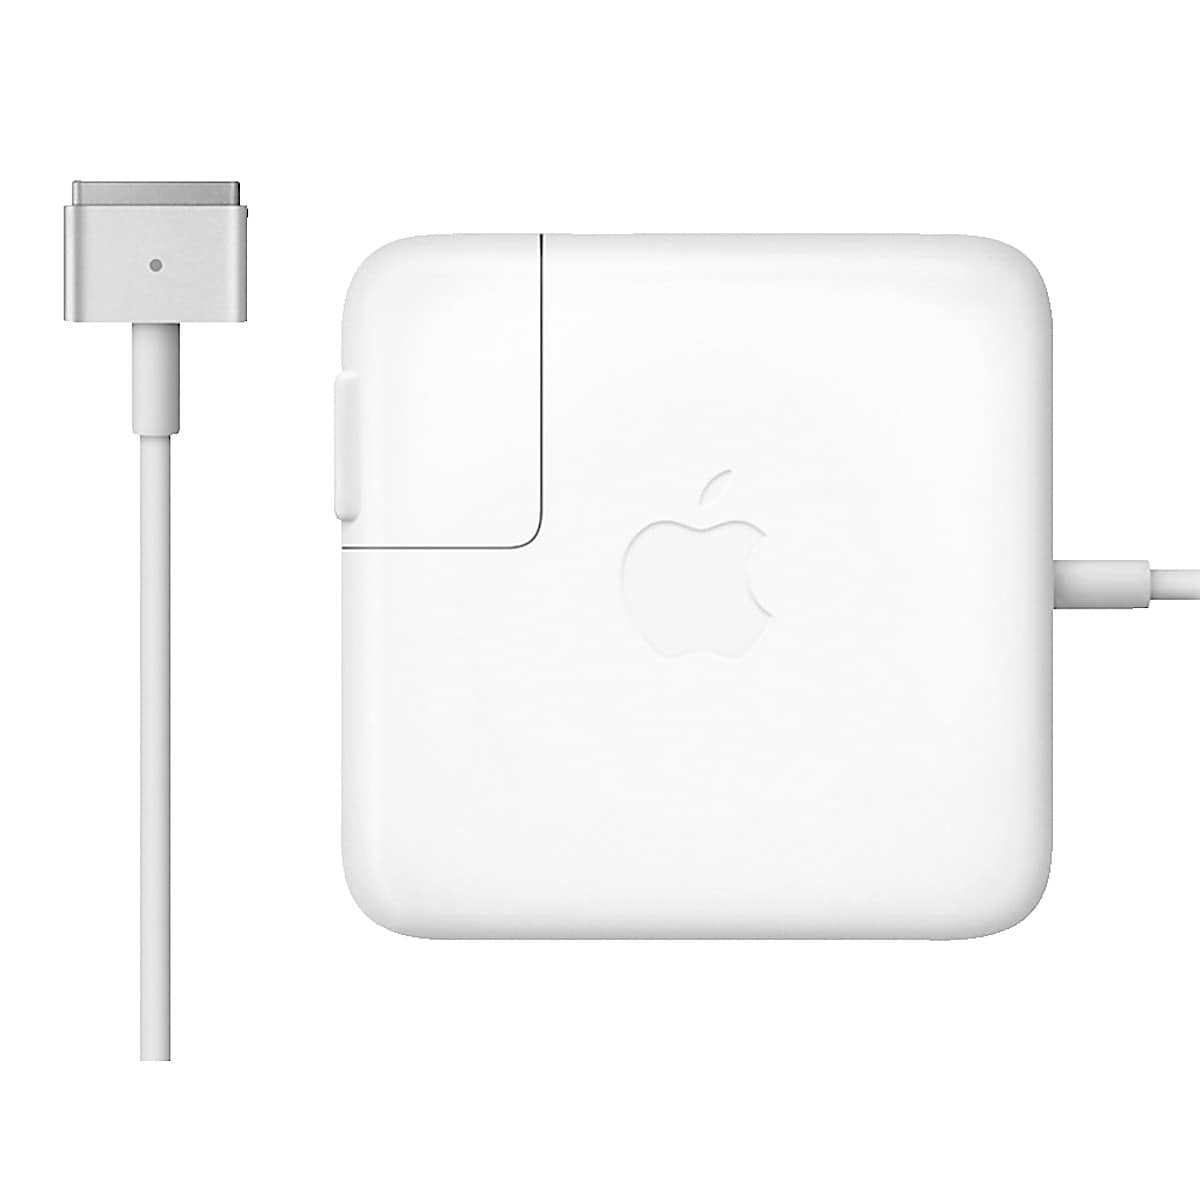 Strömadapter för MacBook Pro Apple 85 W MagSafe 2